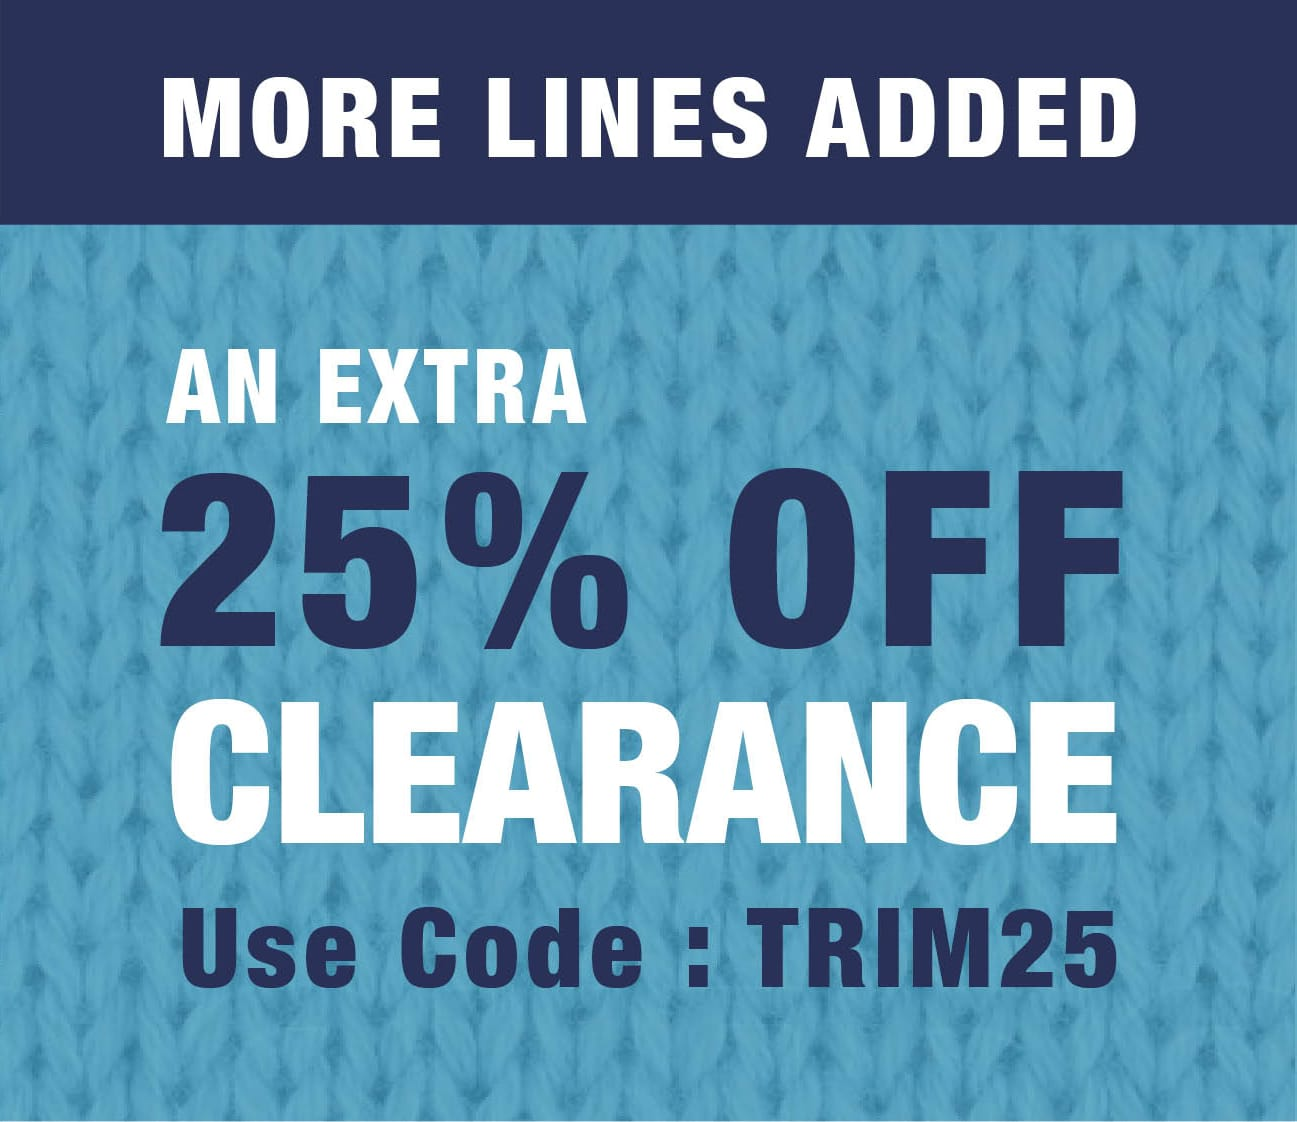 Extra 25% Off Clearance, use code TRIM25